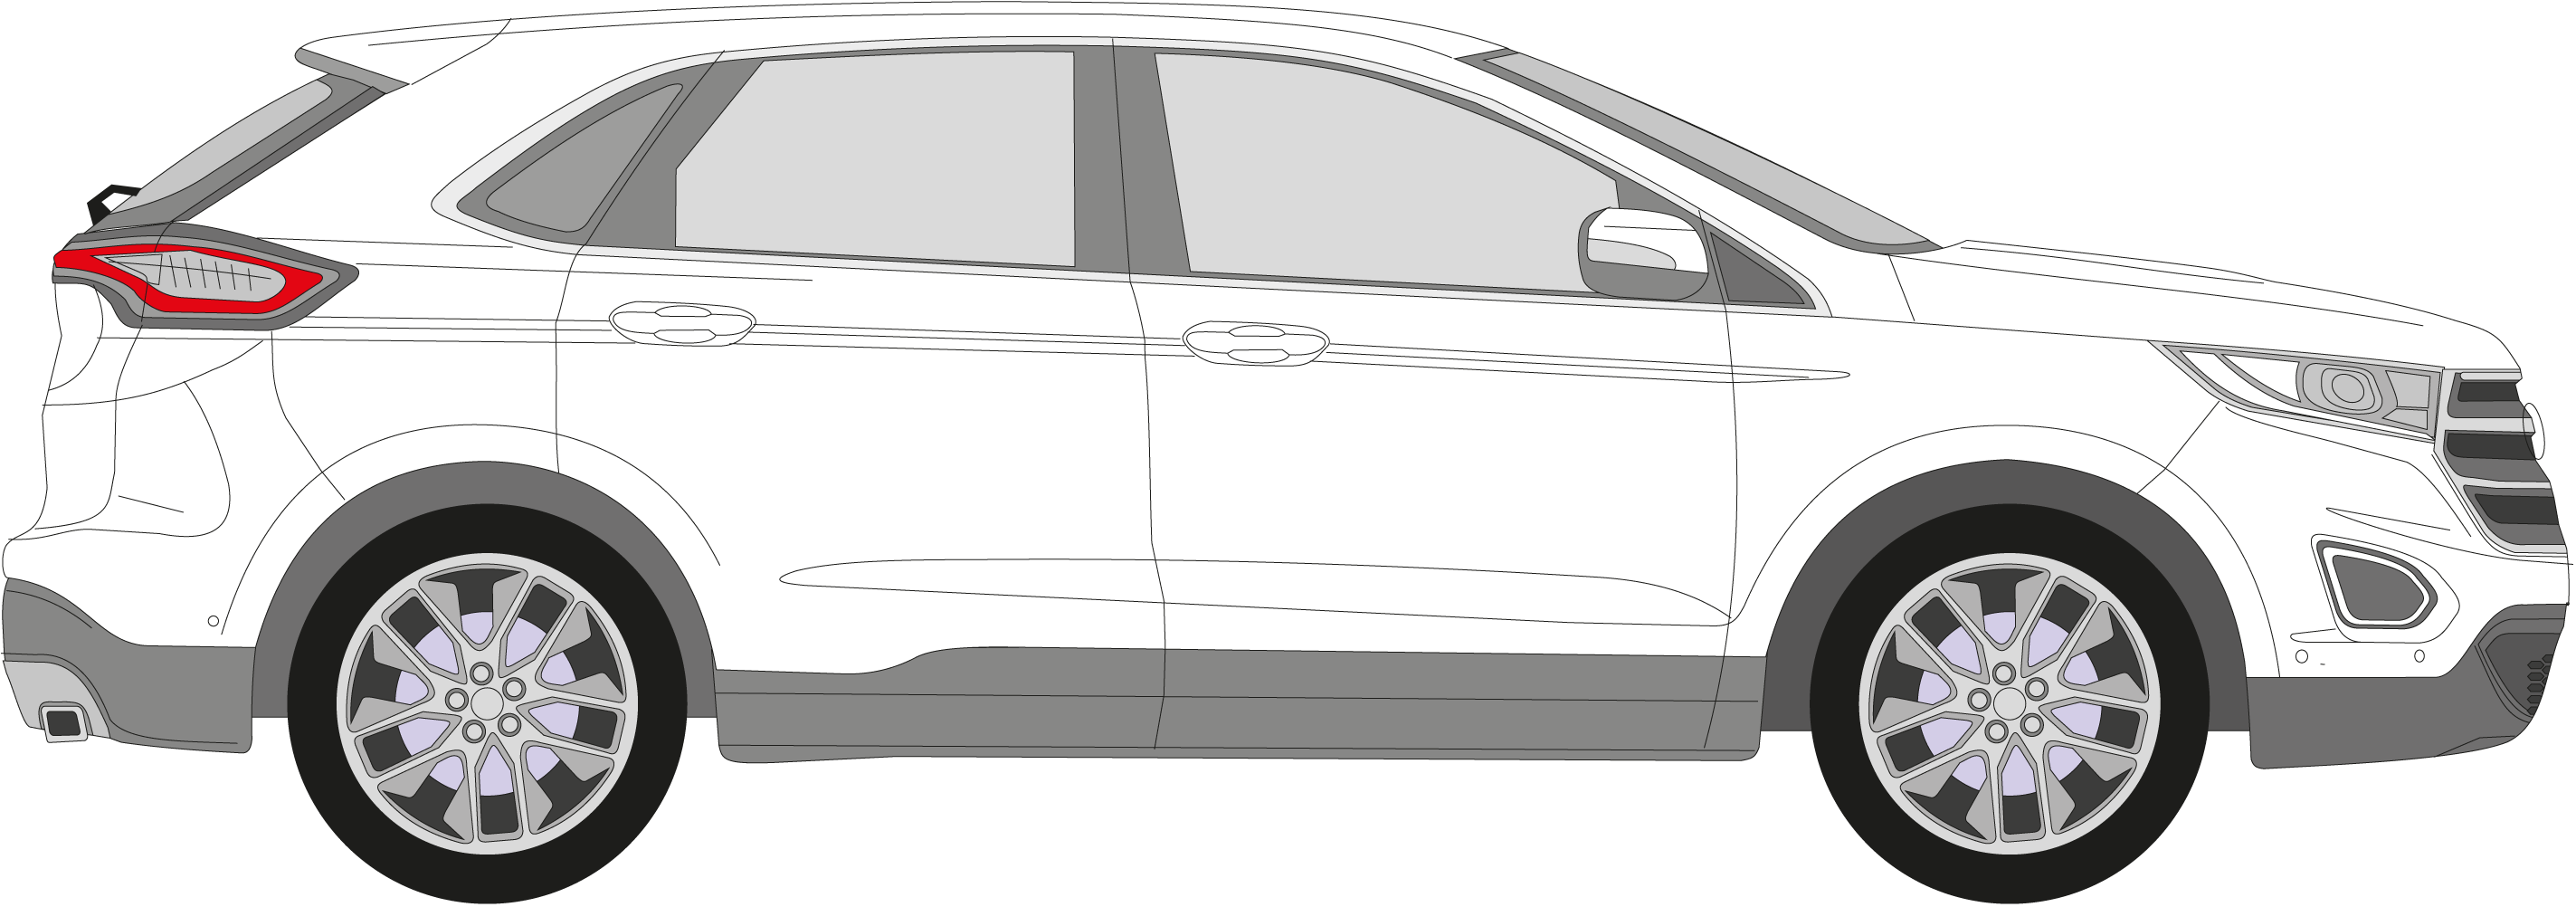 Detailed Information About Roof Types Roof Rack Designs And Roof Rack Profiles Can Be Found In The Roof Rack Section Of Our Website